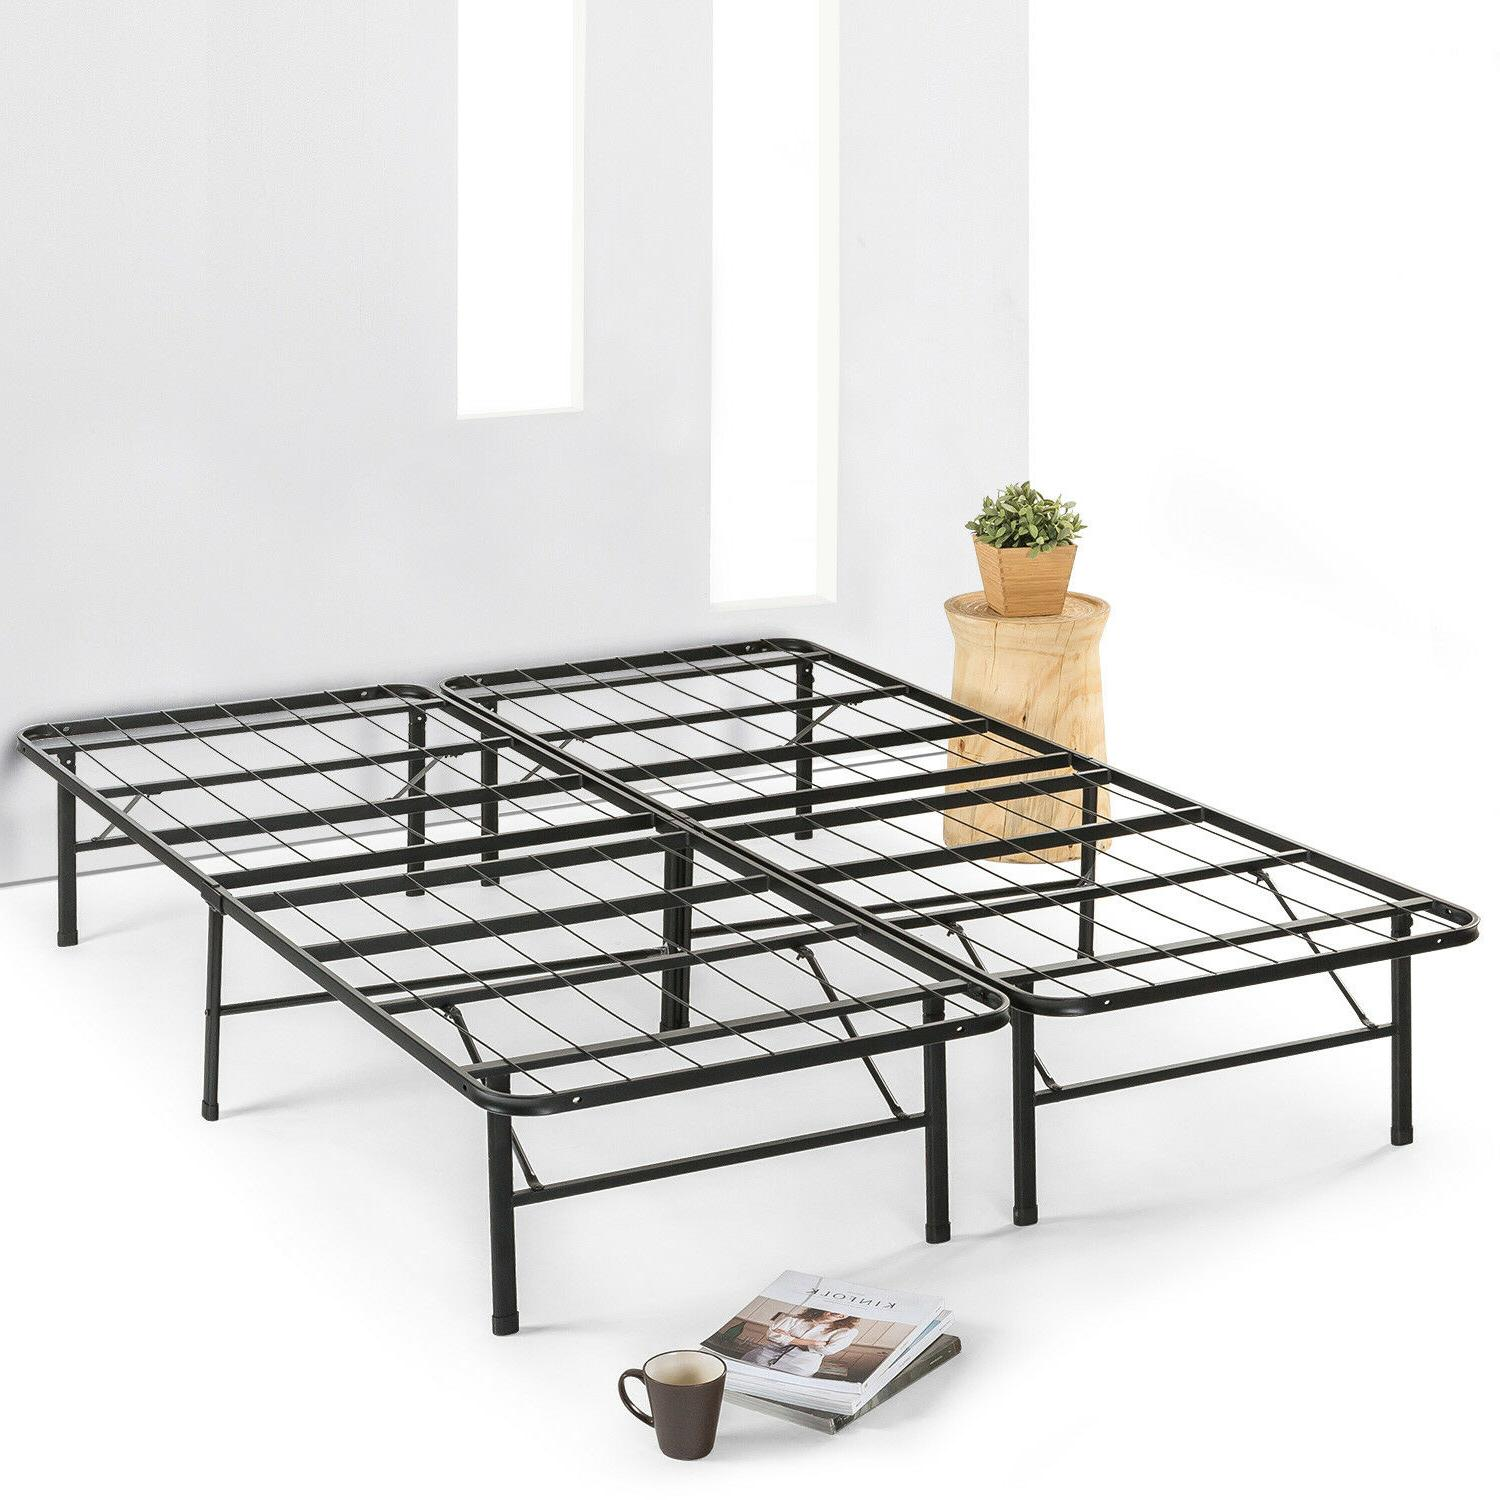 14 metal bed frame mattress foundation extra